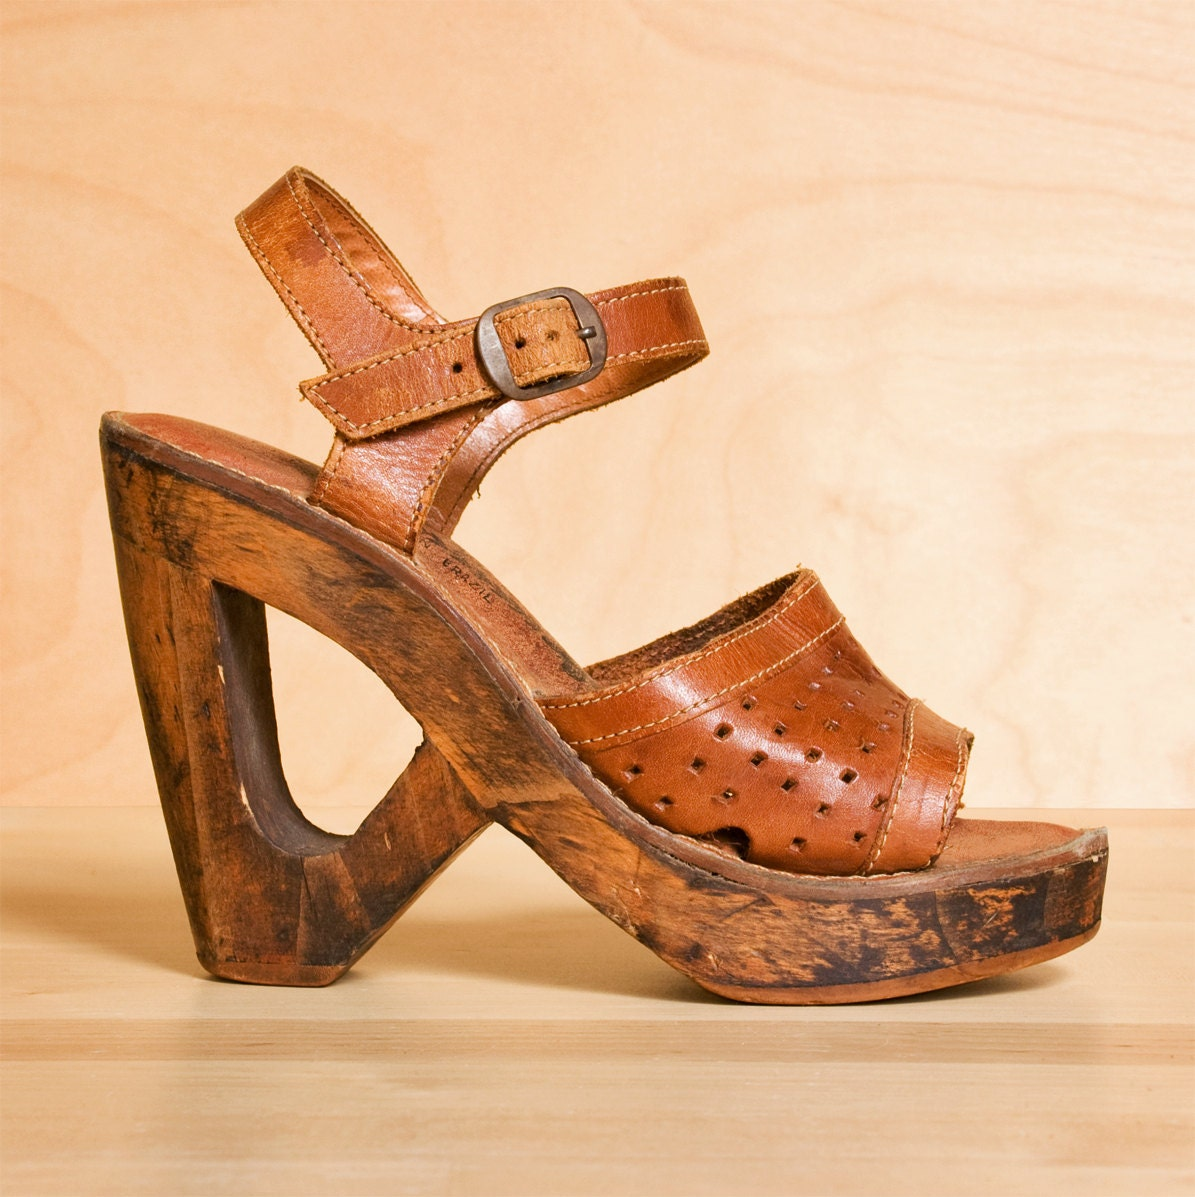 1970s wood platform shoes distressed whisky leather by